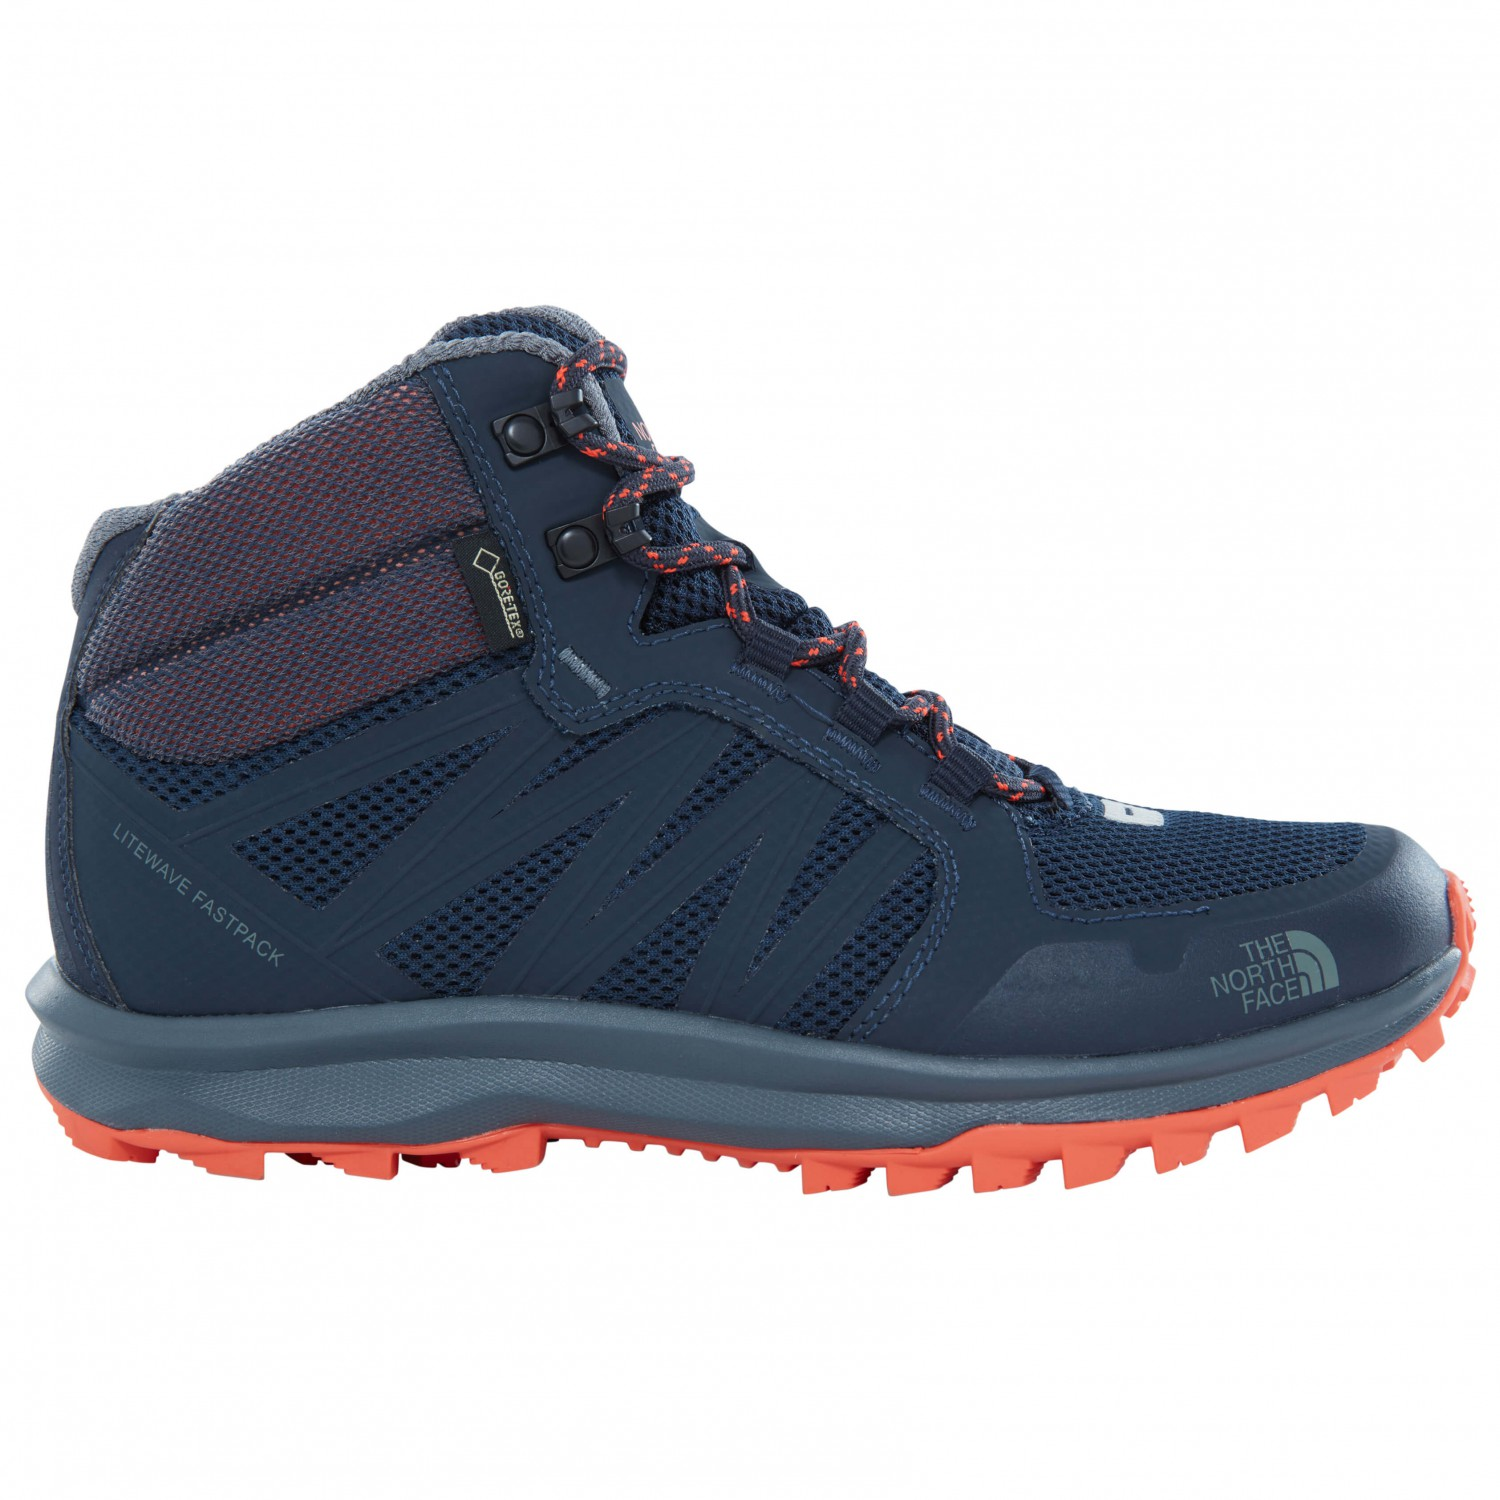 aa004a56f The North Face - Women's Litewave Fastpack Mid GTX - Walking boots